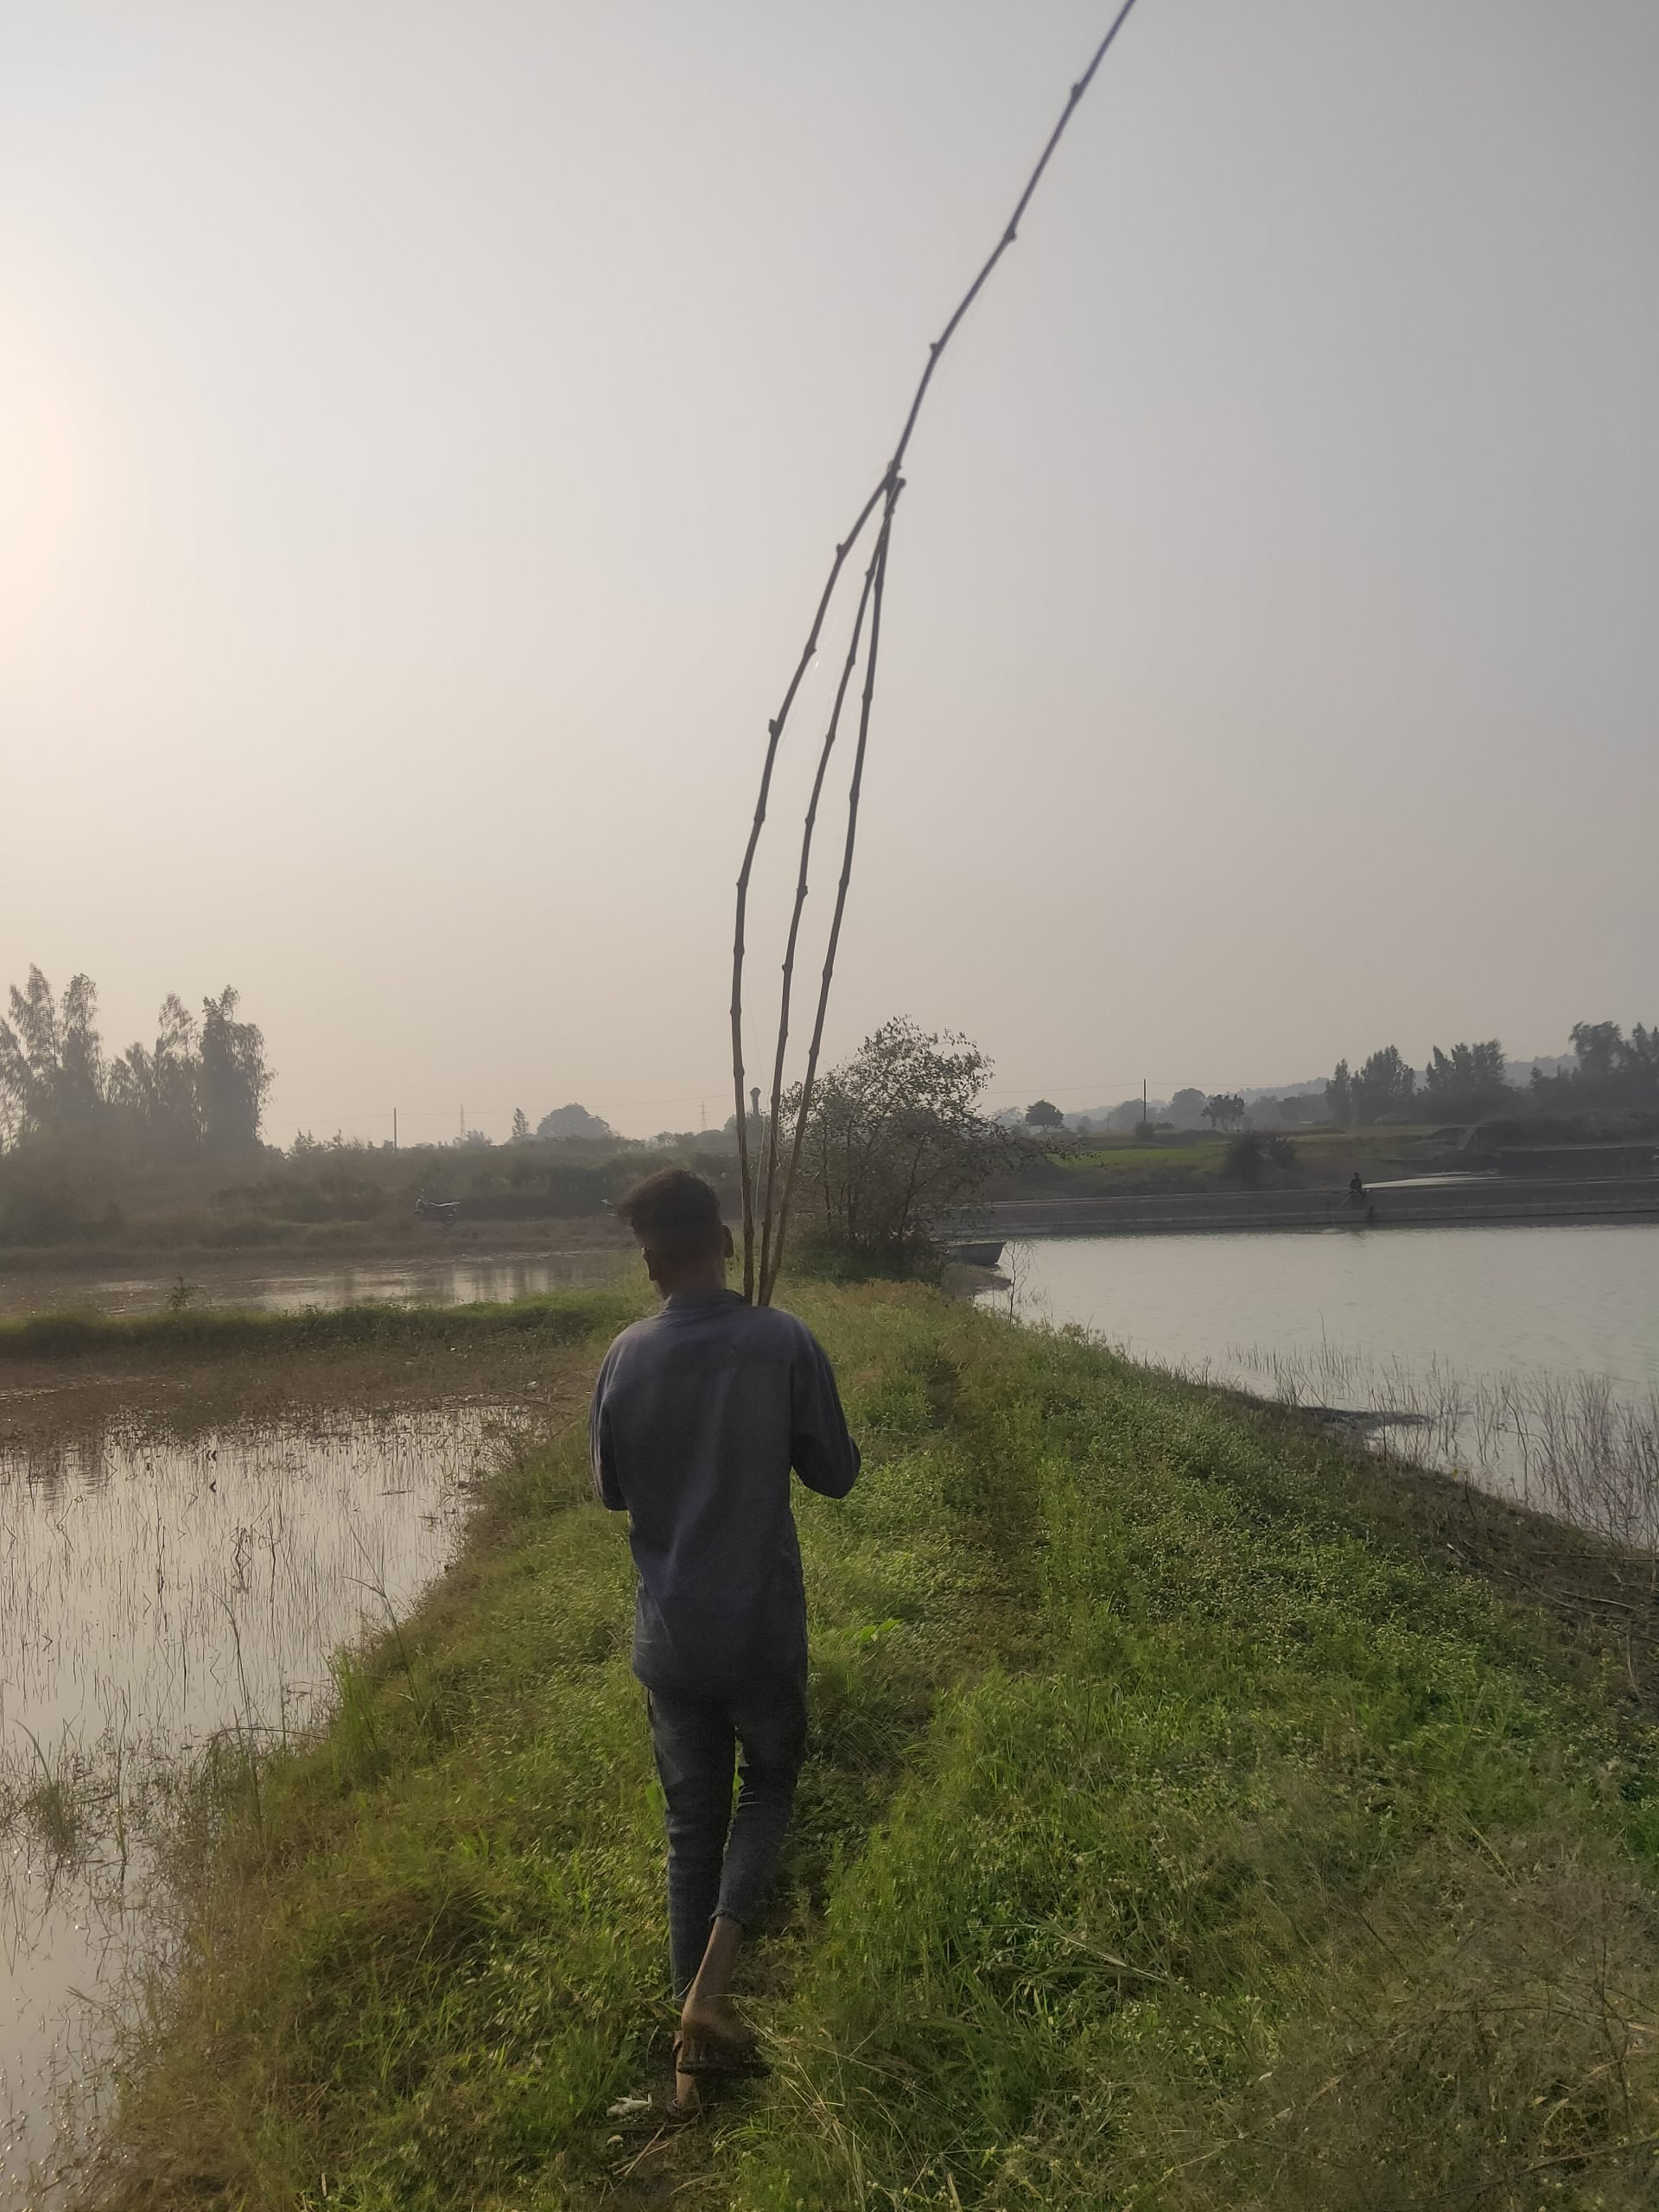 A boy with fishing rods